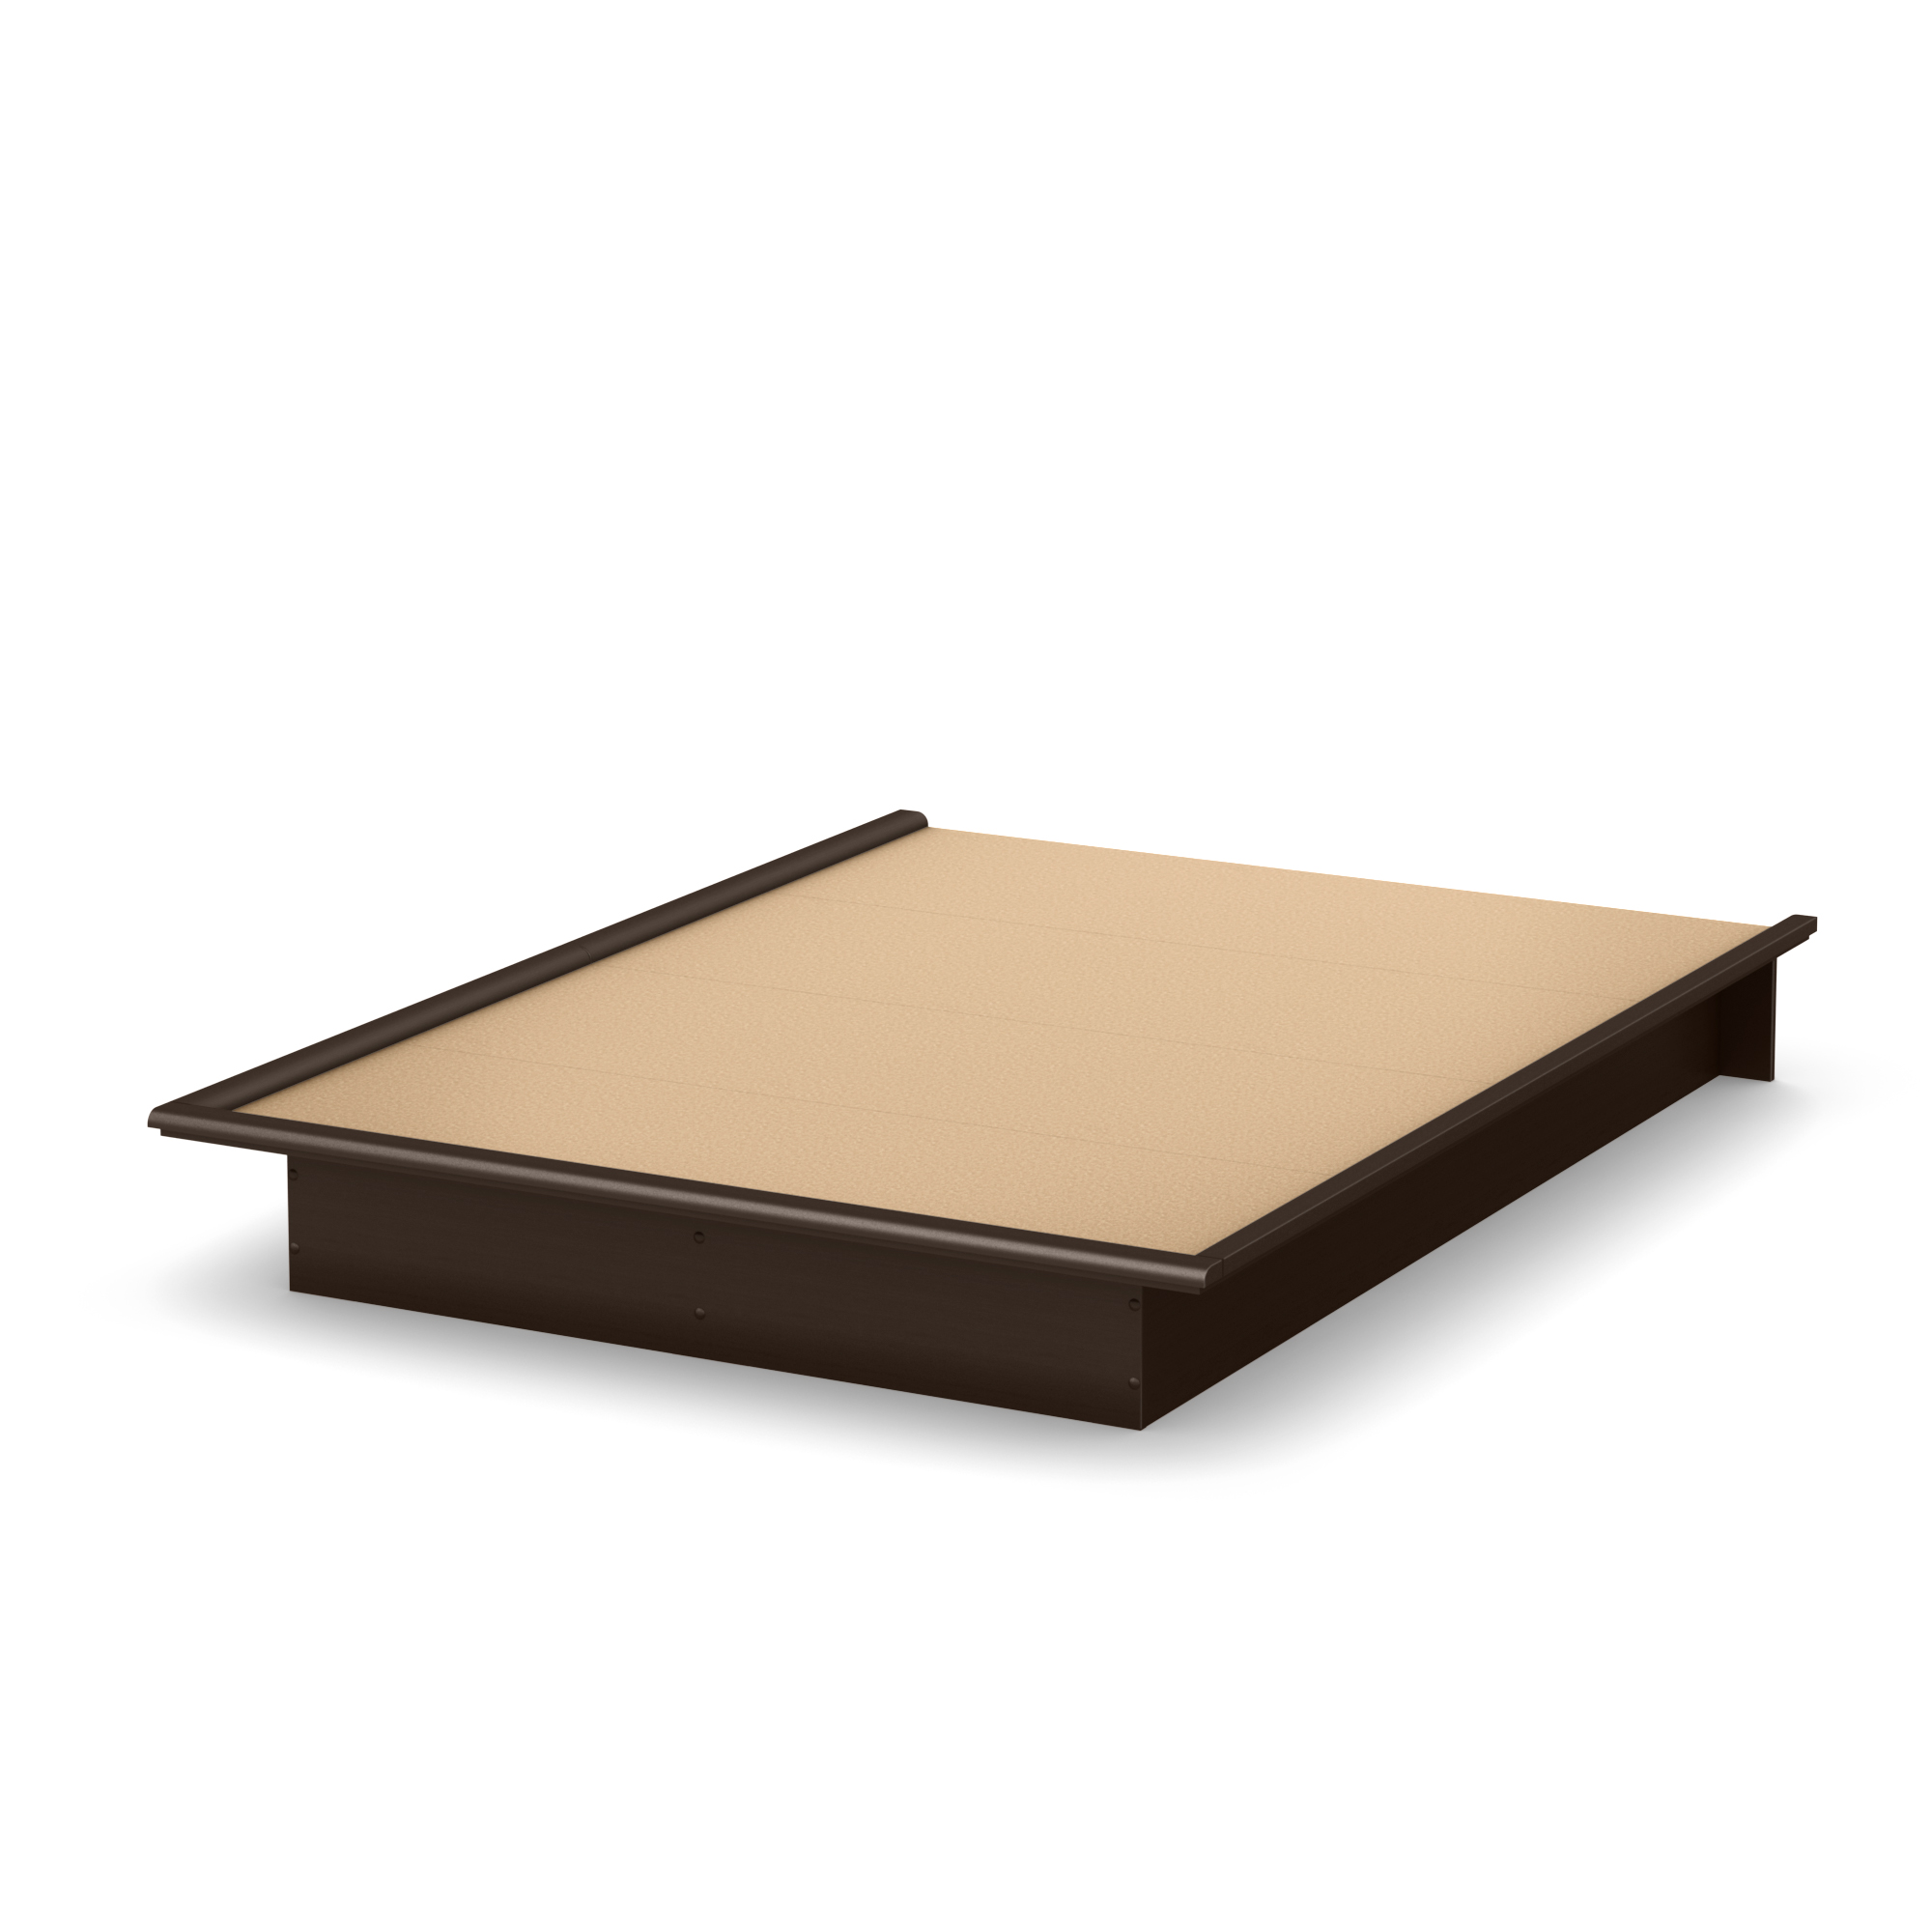 south shore basics queen platform bed with molding '' multiple  - south shore basics queen platform bed with molding '' multiple finishes walmartcom